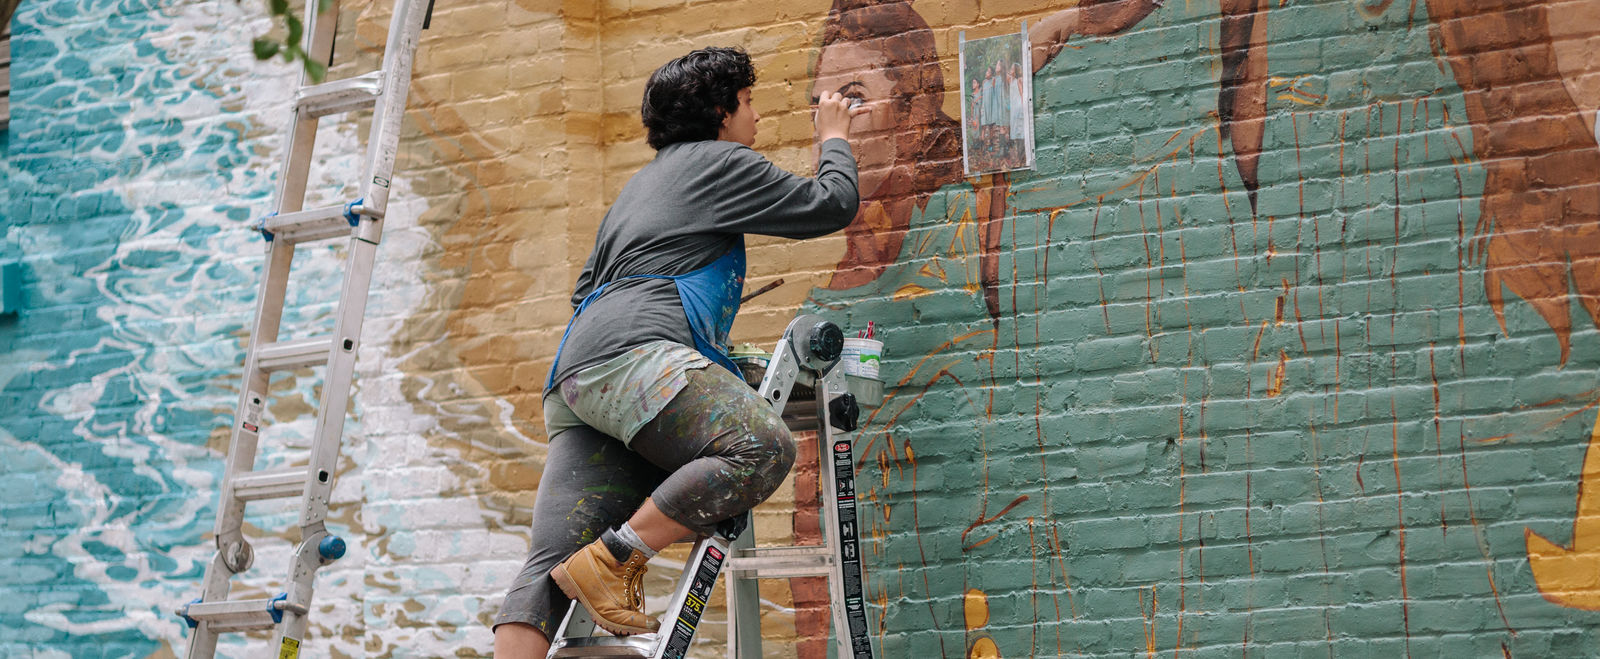 A woman paints a mural outdoors.